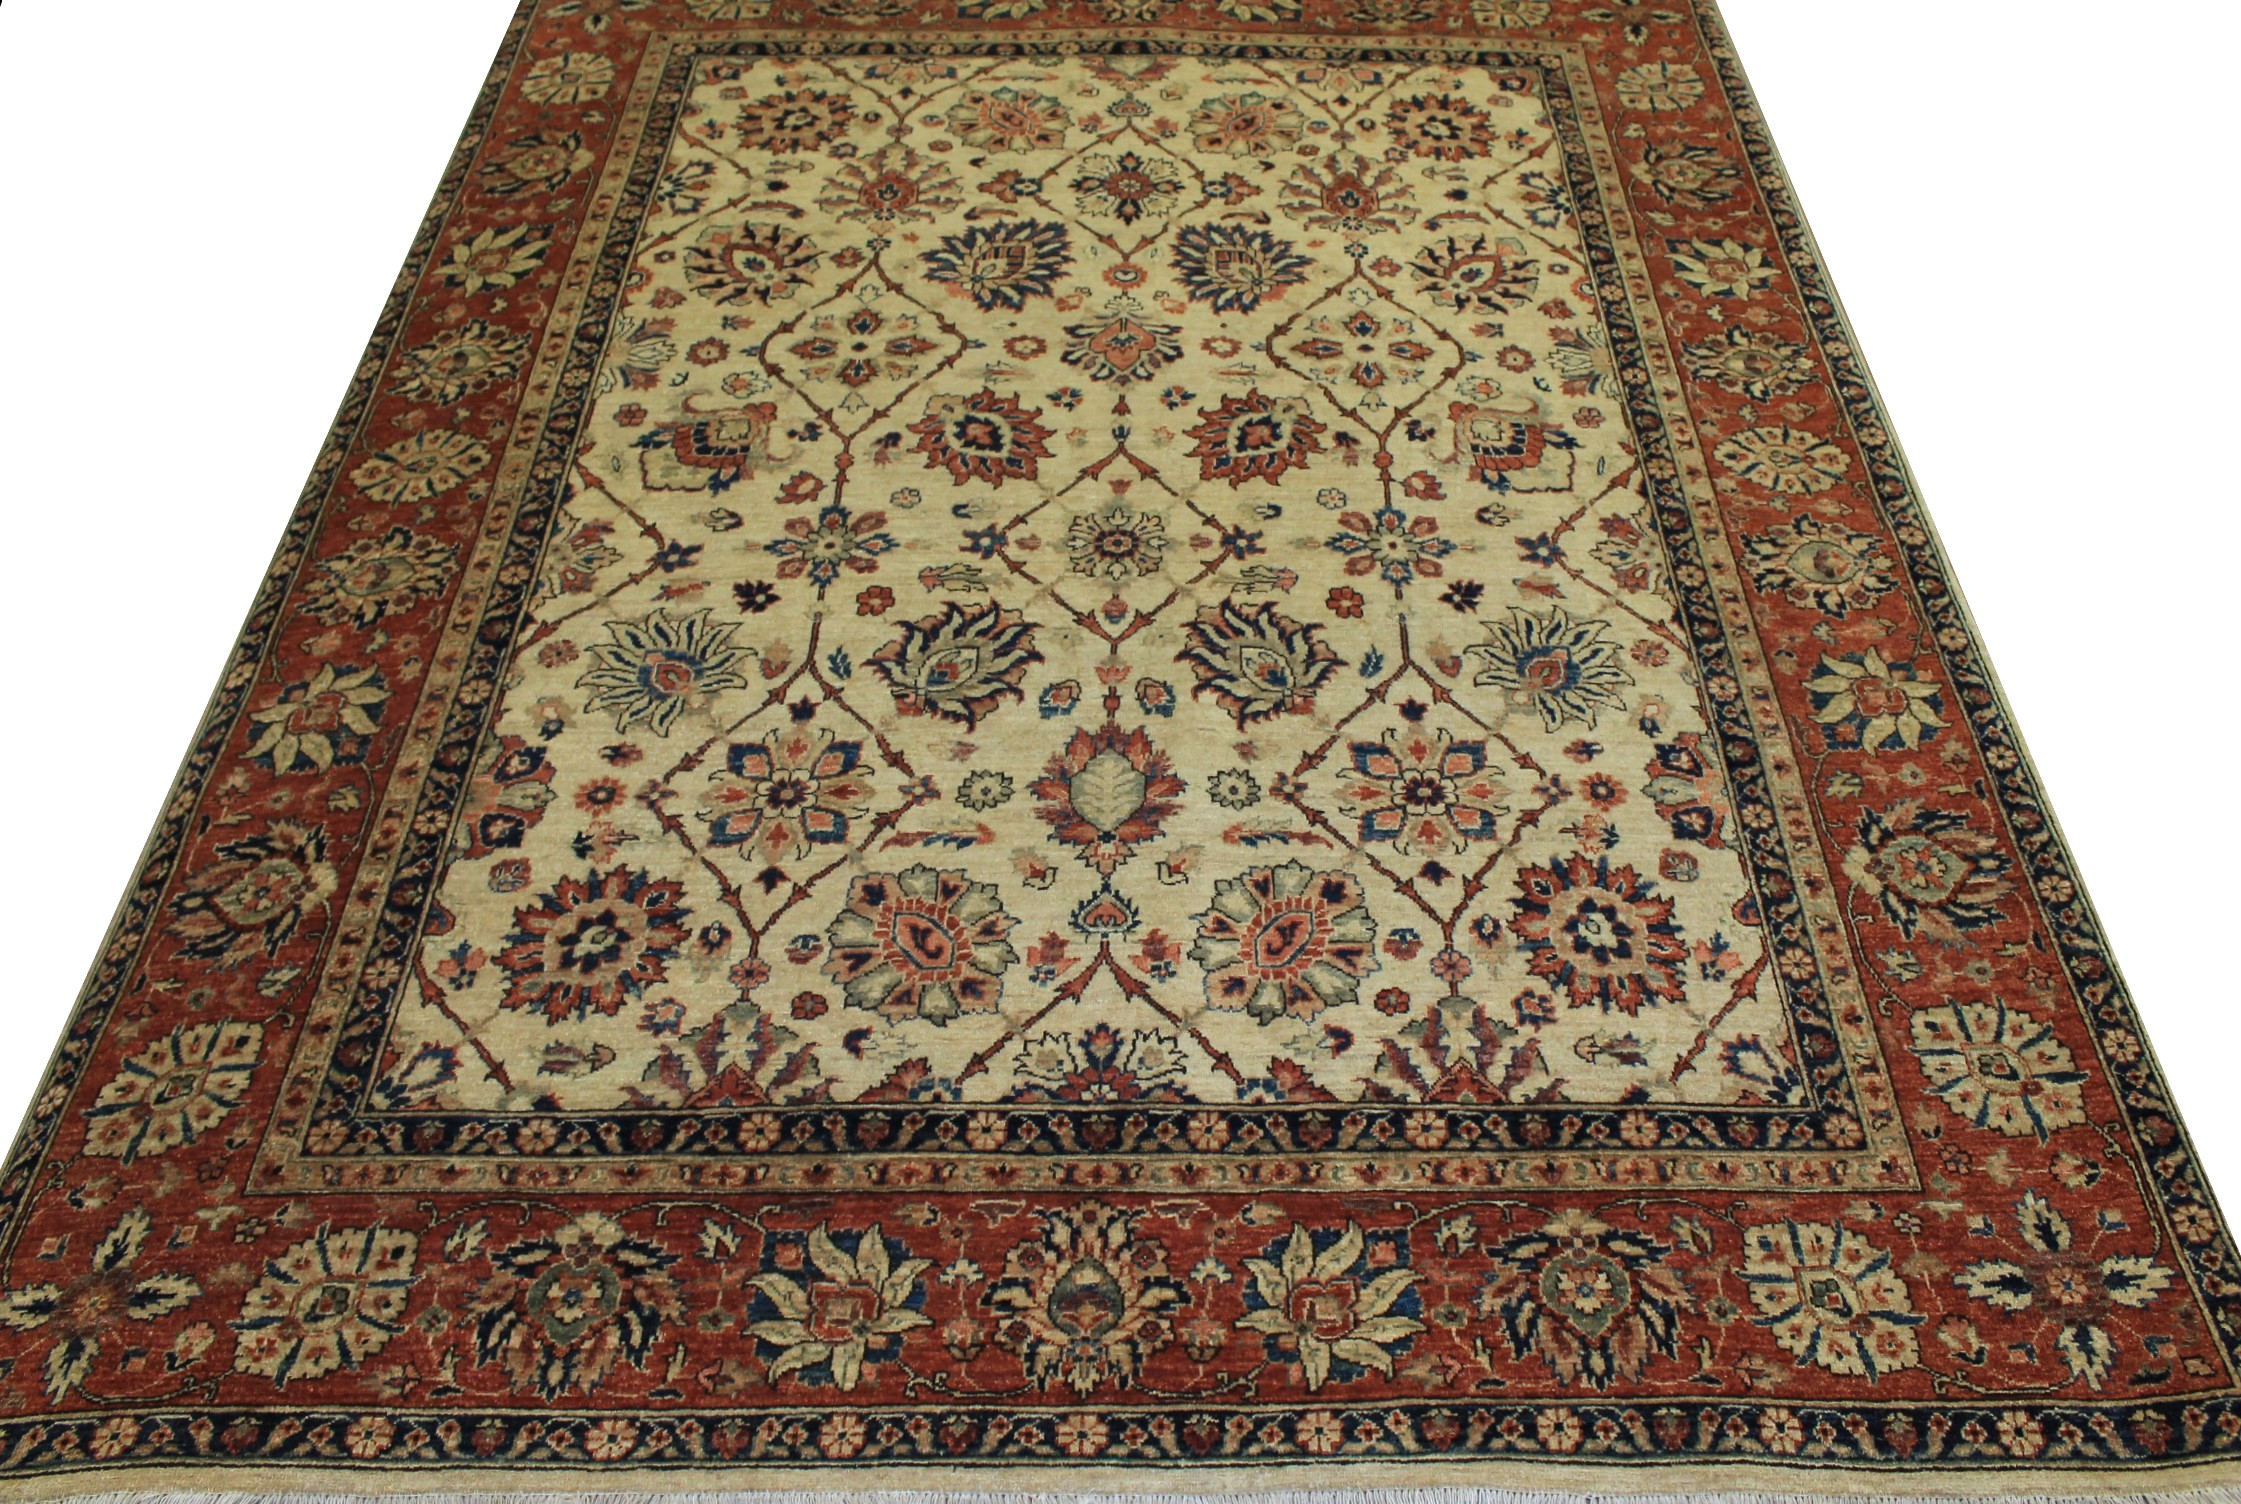 8x10 Peshawar Hand Knotted Wool Area Rug - MR13038